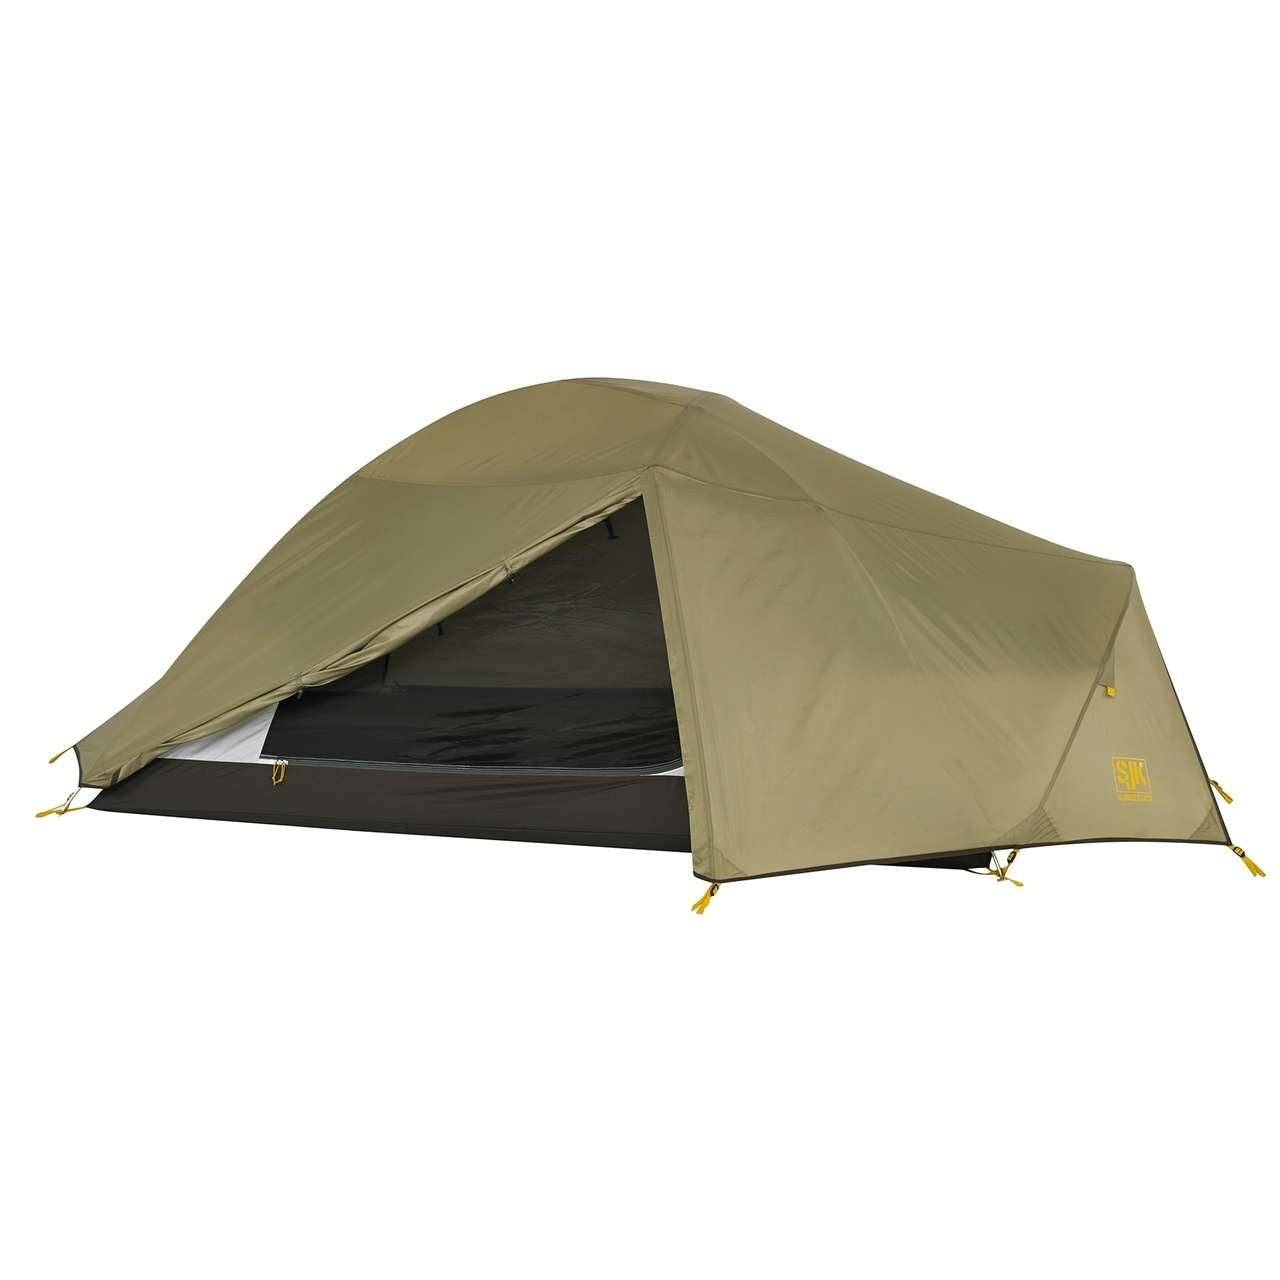 ... Sightline 2-Person Tent. Image 1  sc 1 st  Slumberjack & Slumberjack Sightline 2